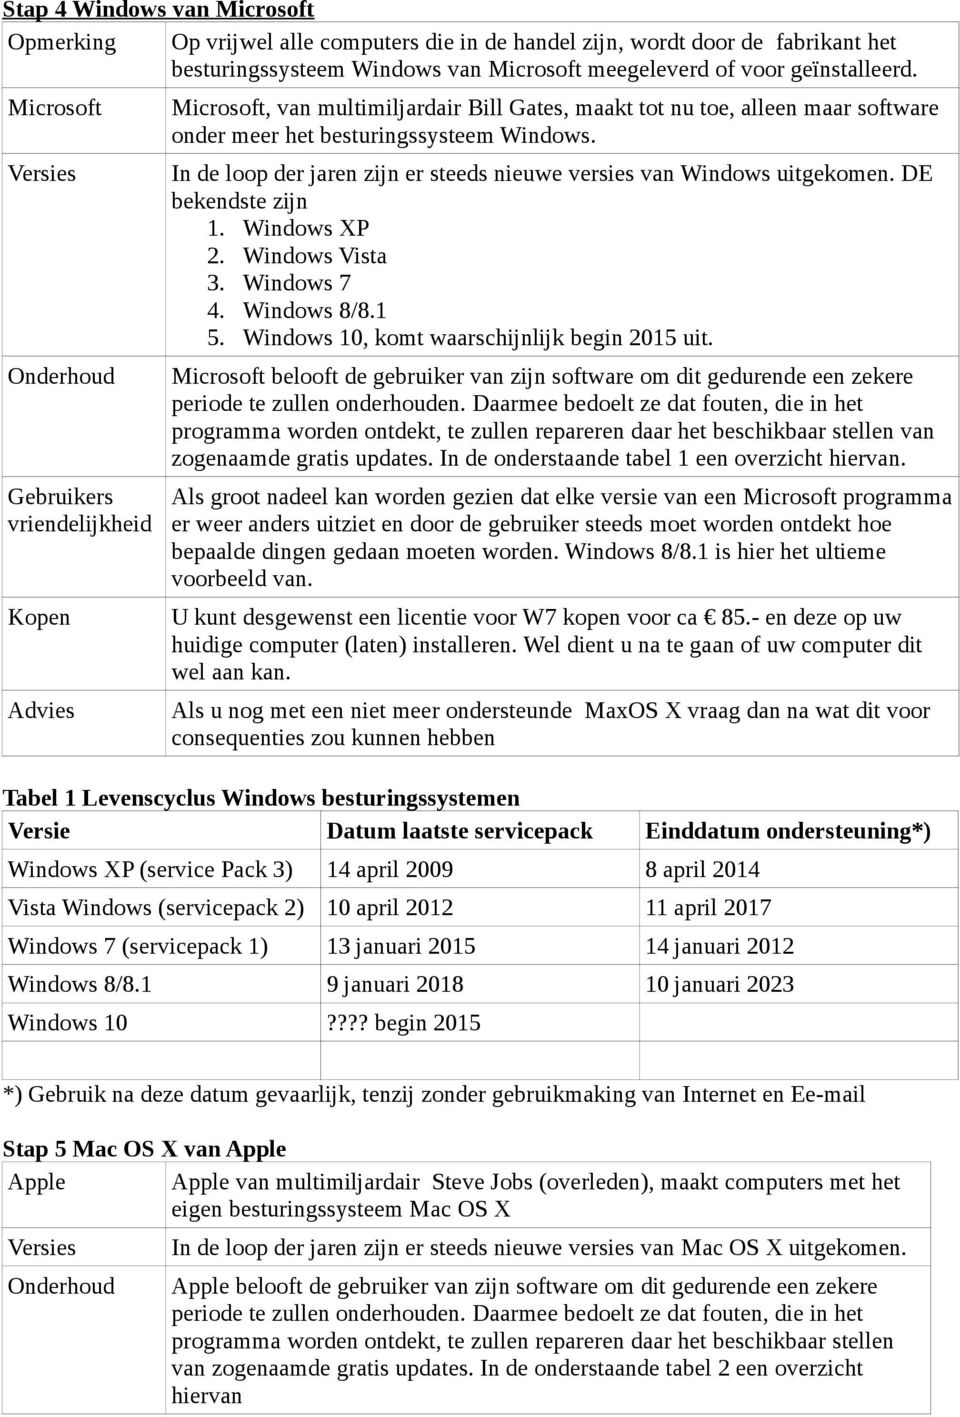 In de loop der jaren zijn er steeds nieuwe versies van Windows uitgekomen. DE bekendste zijn 1. Windows XP 2. Windows Vista 3. Windows 7 4. Windows 8/8.1 5.